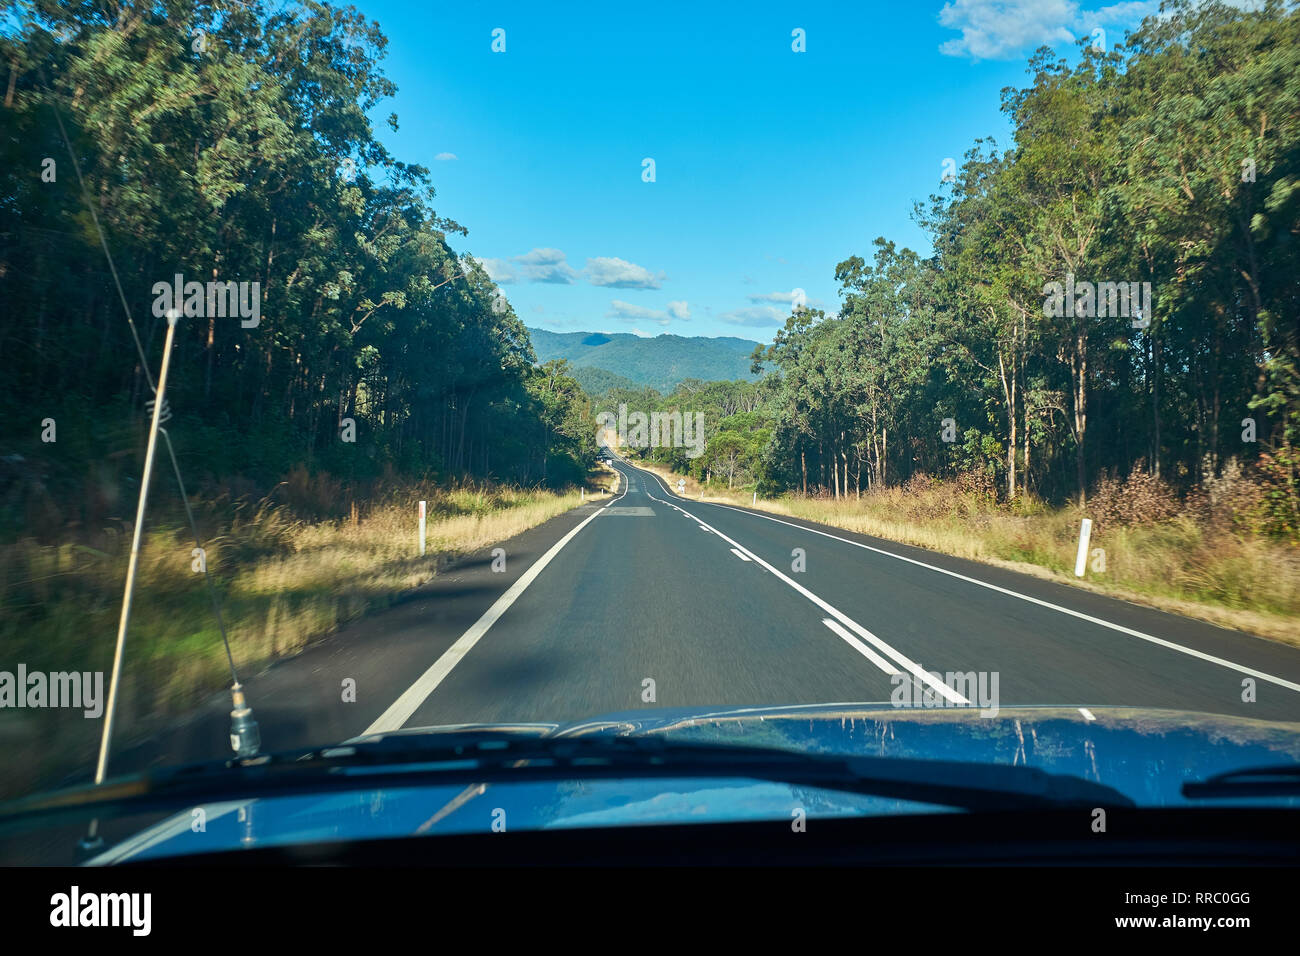 View from inside a car travelling along a road with gum trees both sides in the Australian outback on a bright day with no other traffic insight - Stock Image